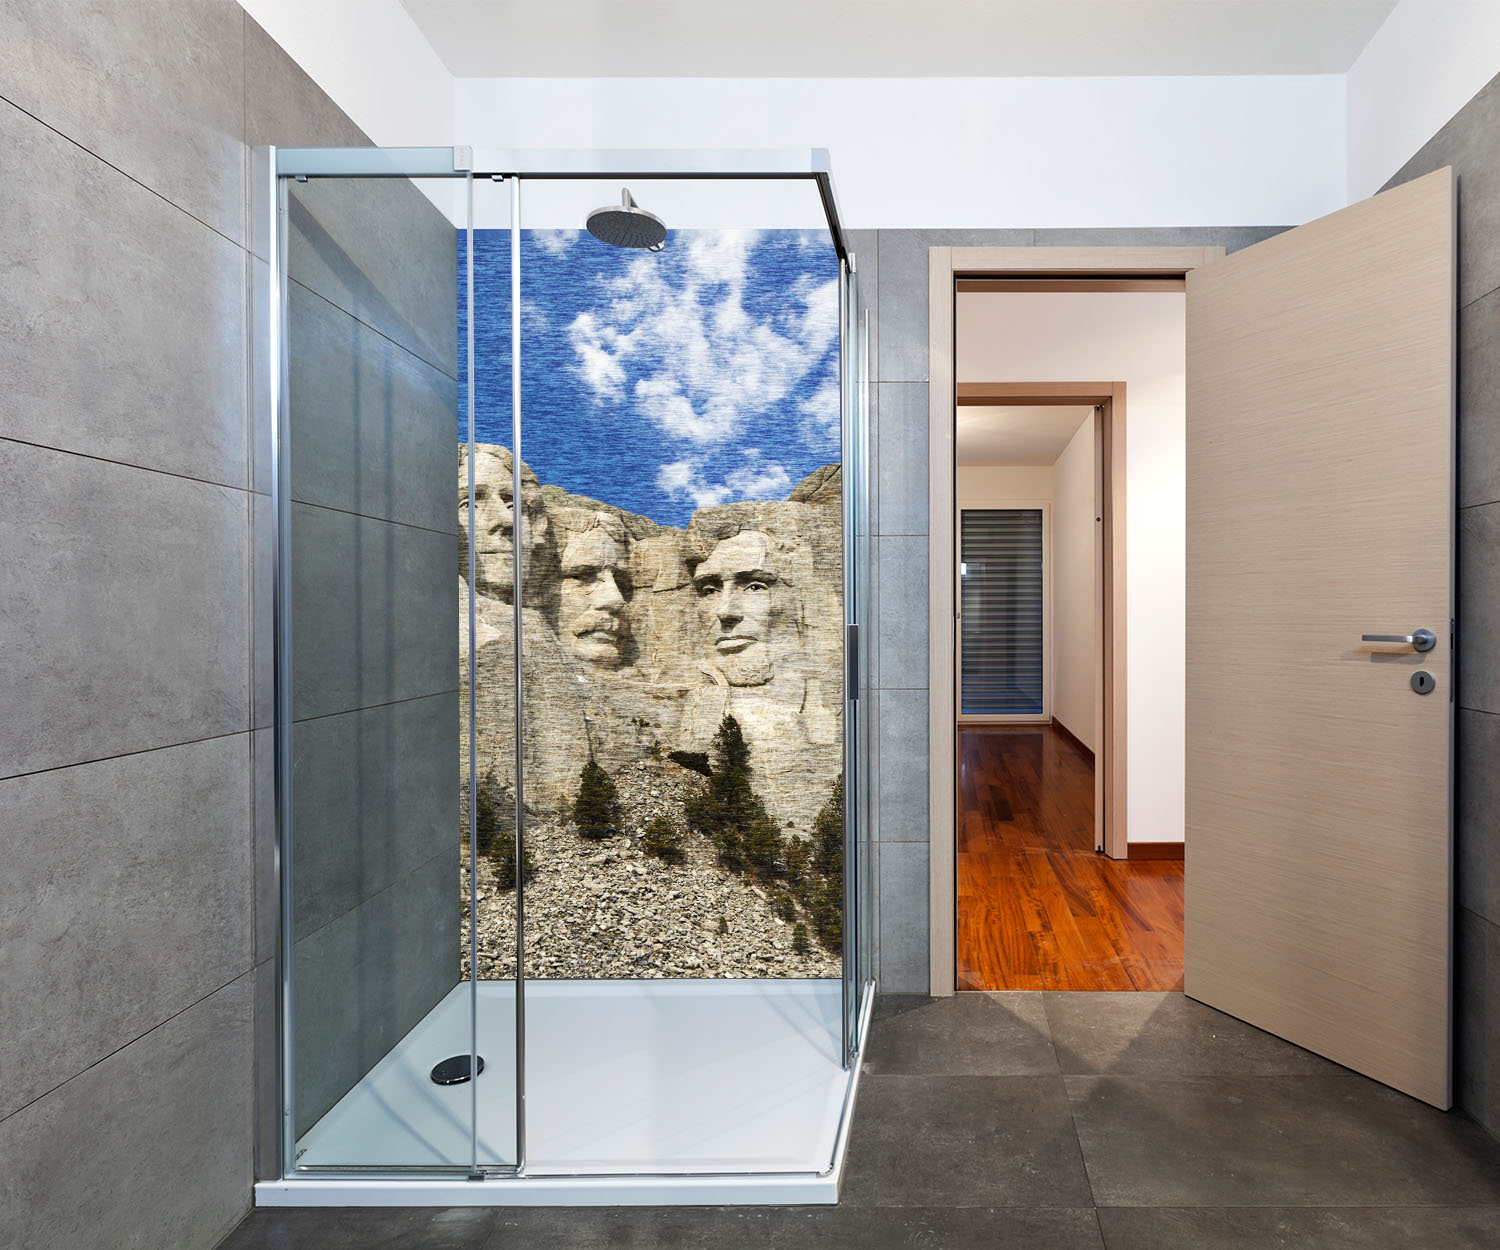 duschr ckwand mount rushmore amerika deko design ebay. Black Bedroom Furniture Sets. Home Design Ideas